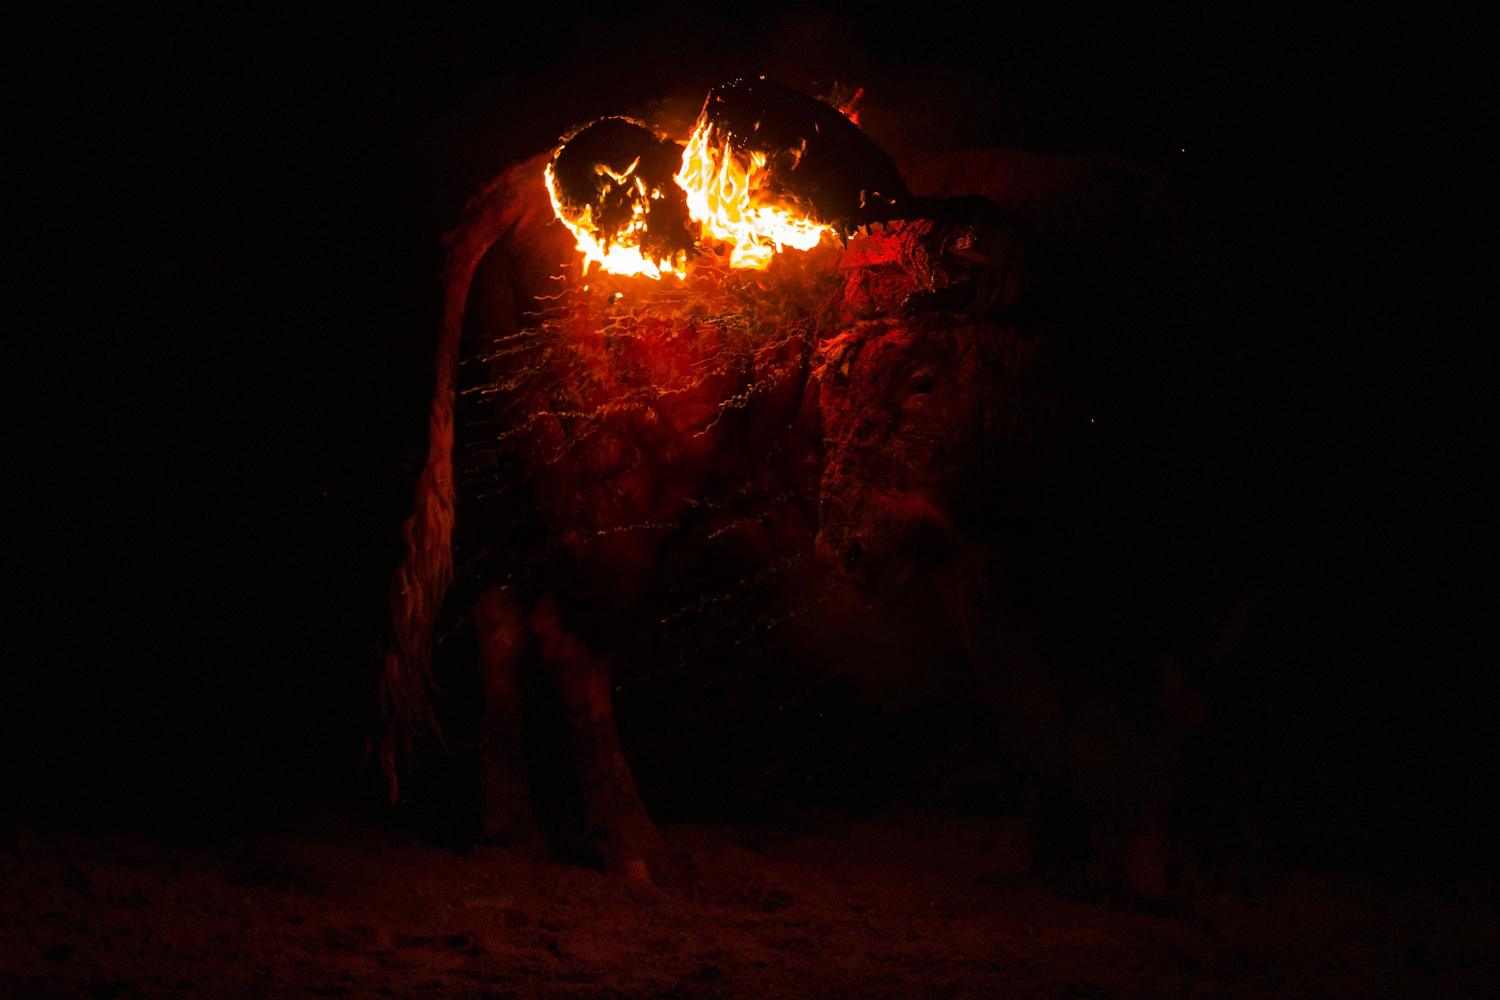 The  bull  turns around during the  'Toro de Jubilo'  fire bull festival on November 16, 2014 in  Medinaceli , Spain.  Toro de Jubilo , a  Fire Bull festival , is an ancient tradition held annually at midnight in the Spanish town of Medinaceli. The event starts when flammable balls attached to a bull,s horns are set alight. The  animal  is then untied and revellers dodge it until the flammable material is consumed. The body of the animal is covered with mud to protect it from burns.